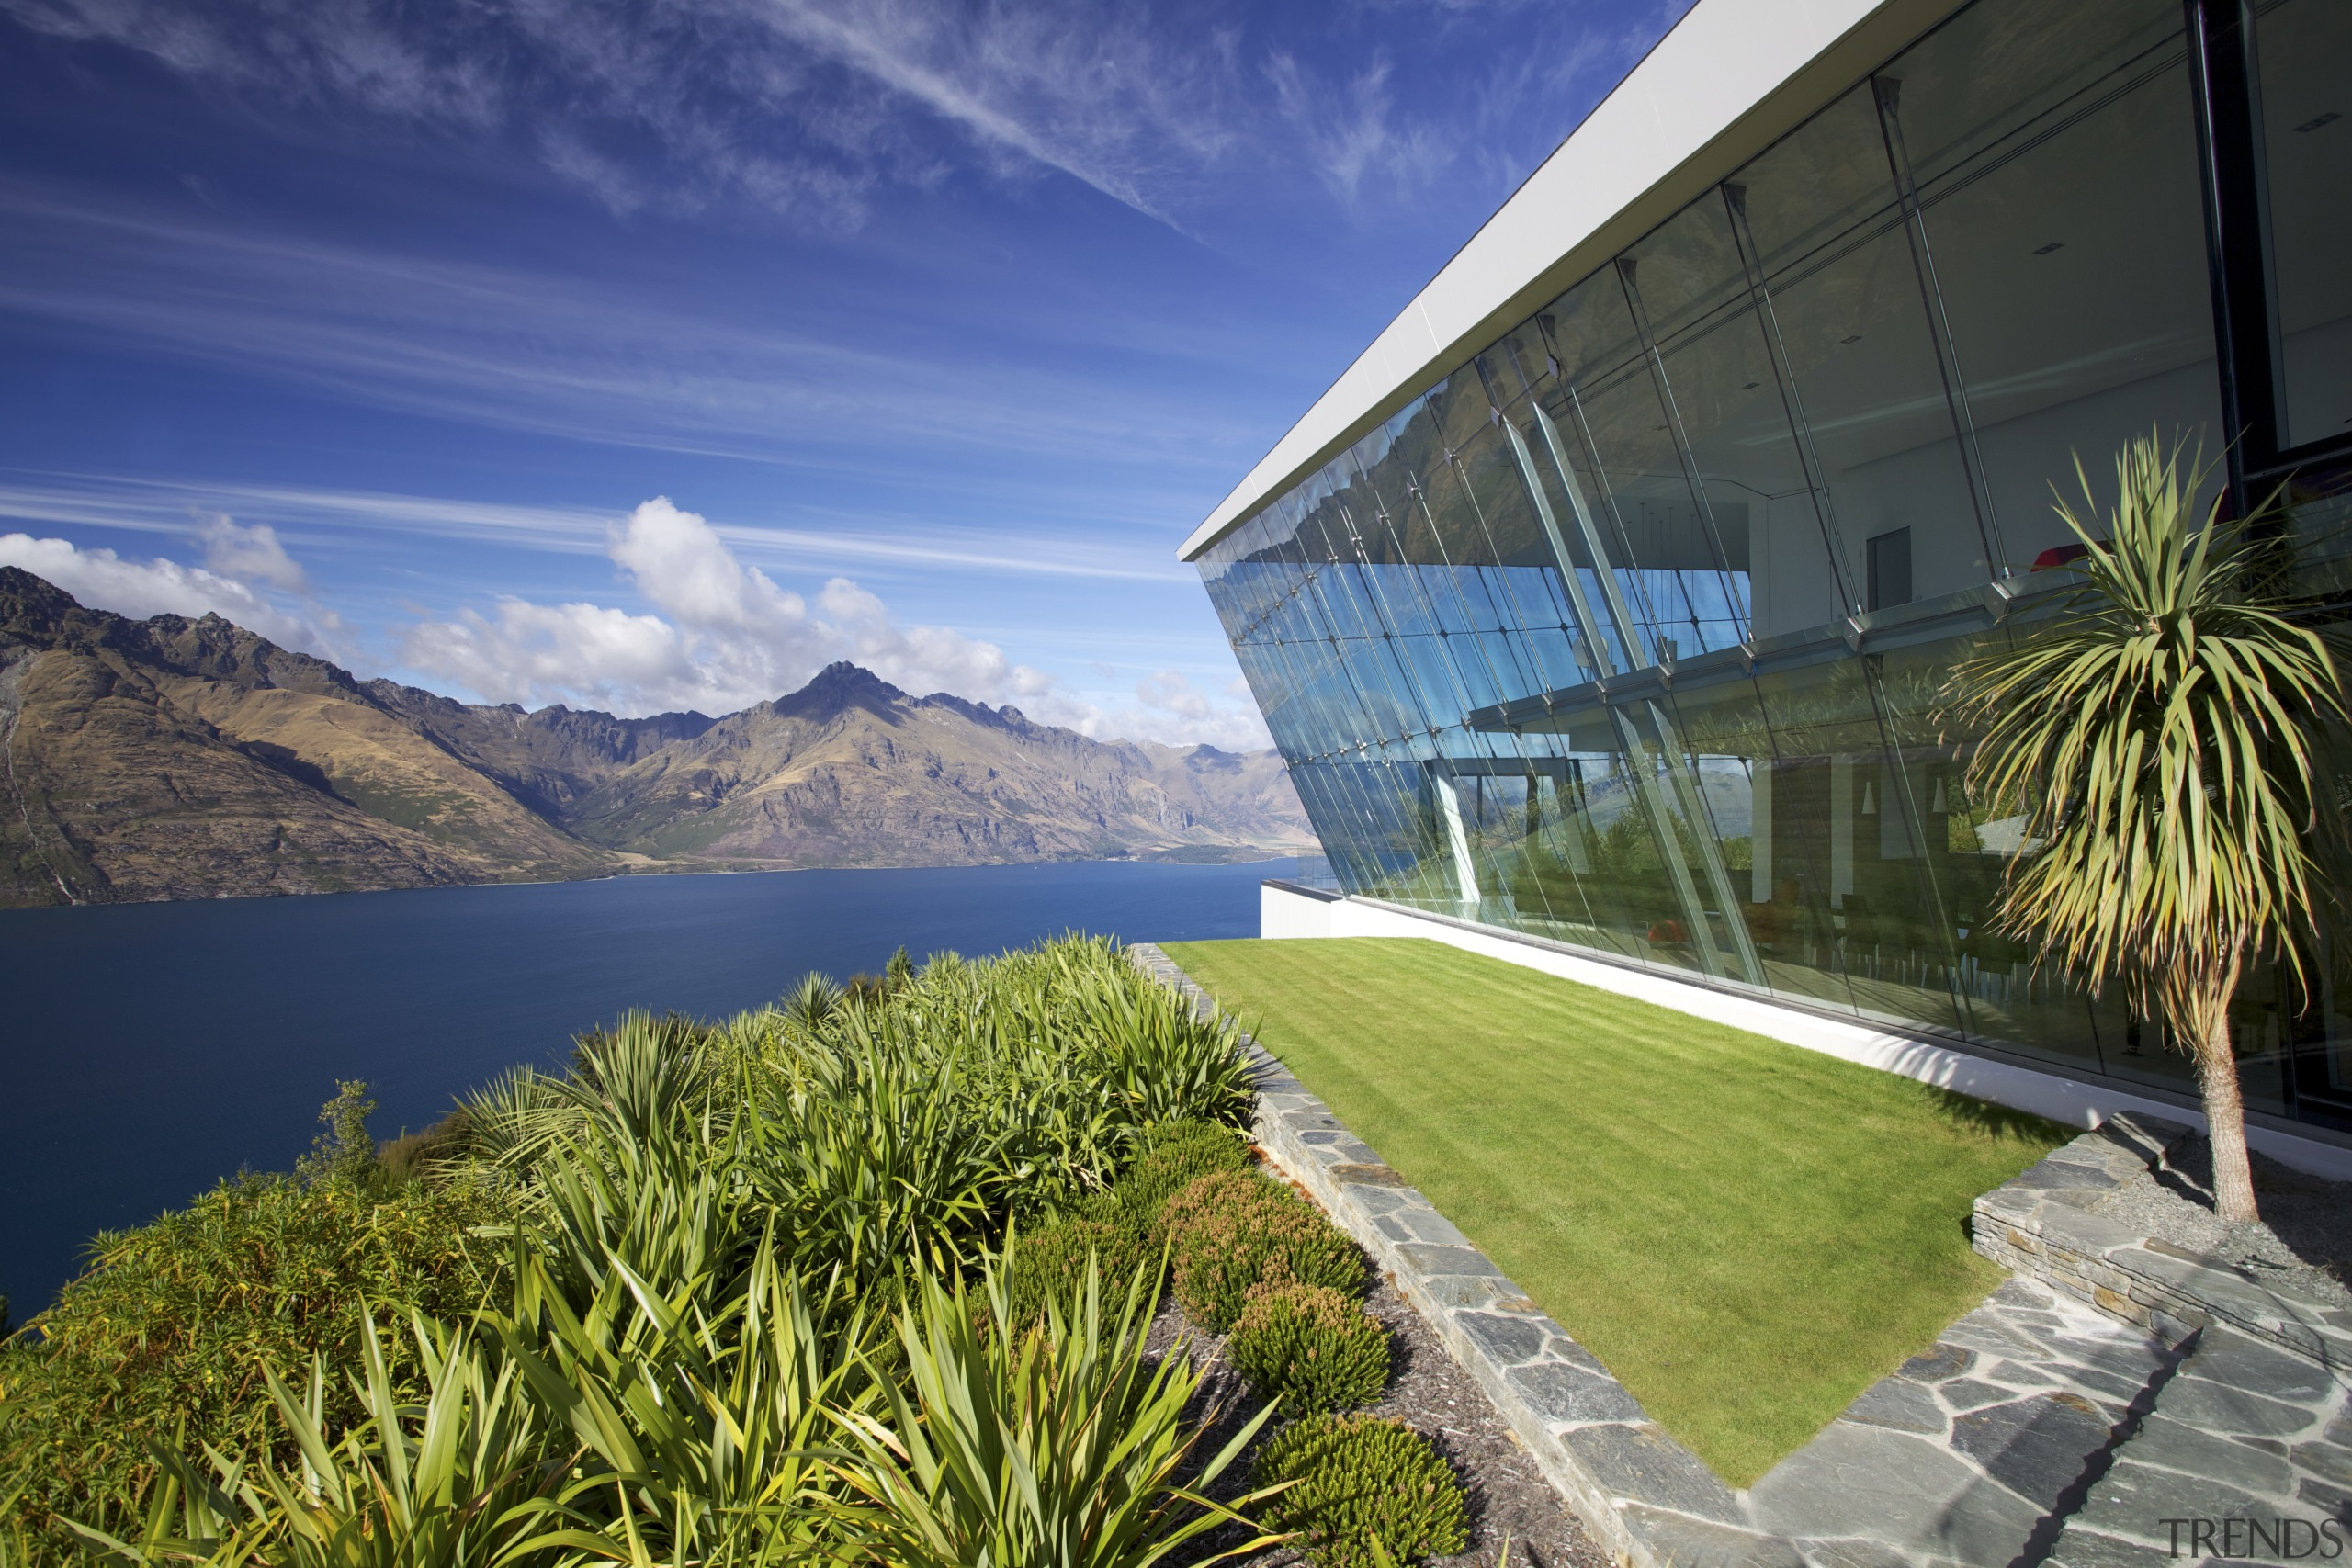 Off the edge  Queenstown glass pavilion Julian architecture, estate, grass, landscape, real estate, reflection, sky, water, blue